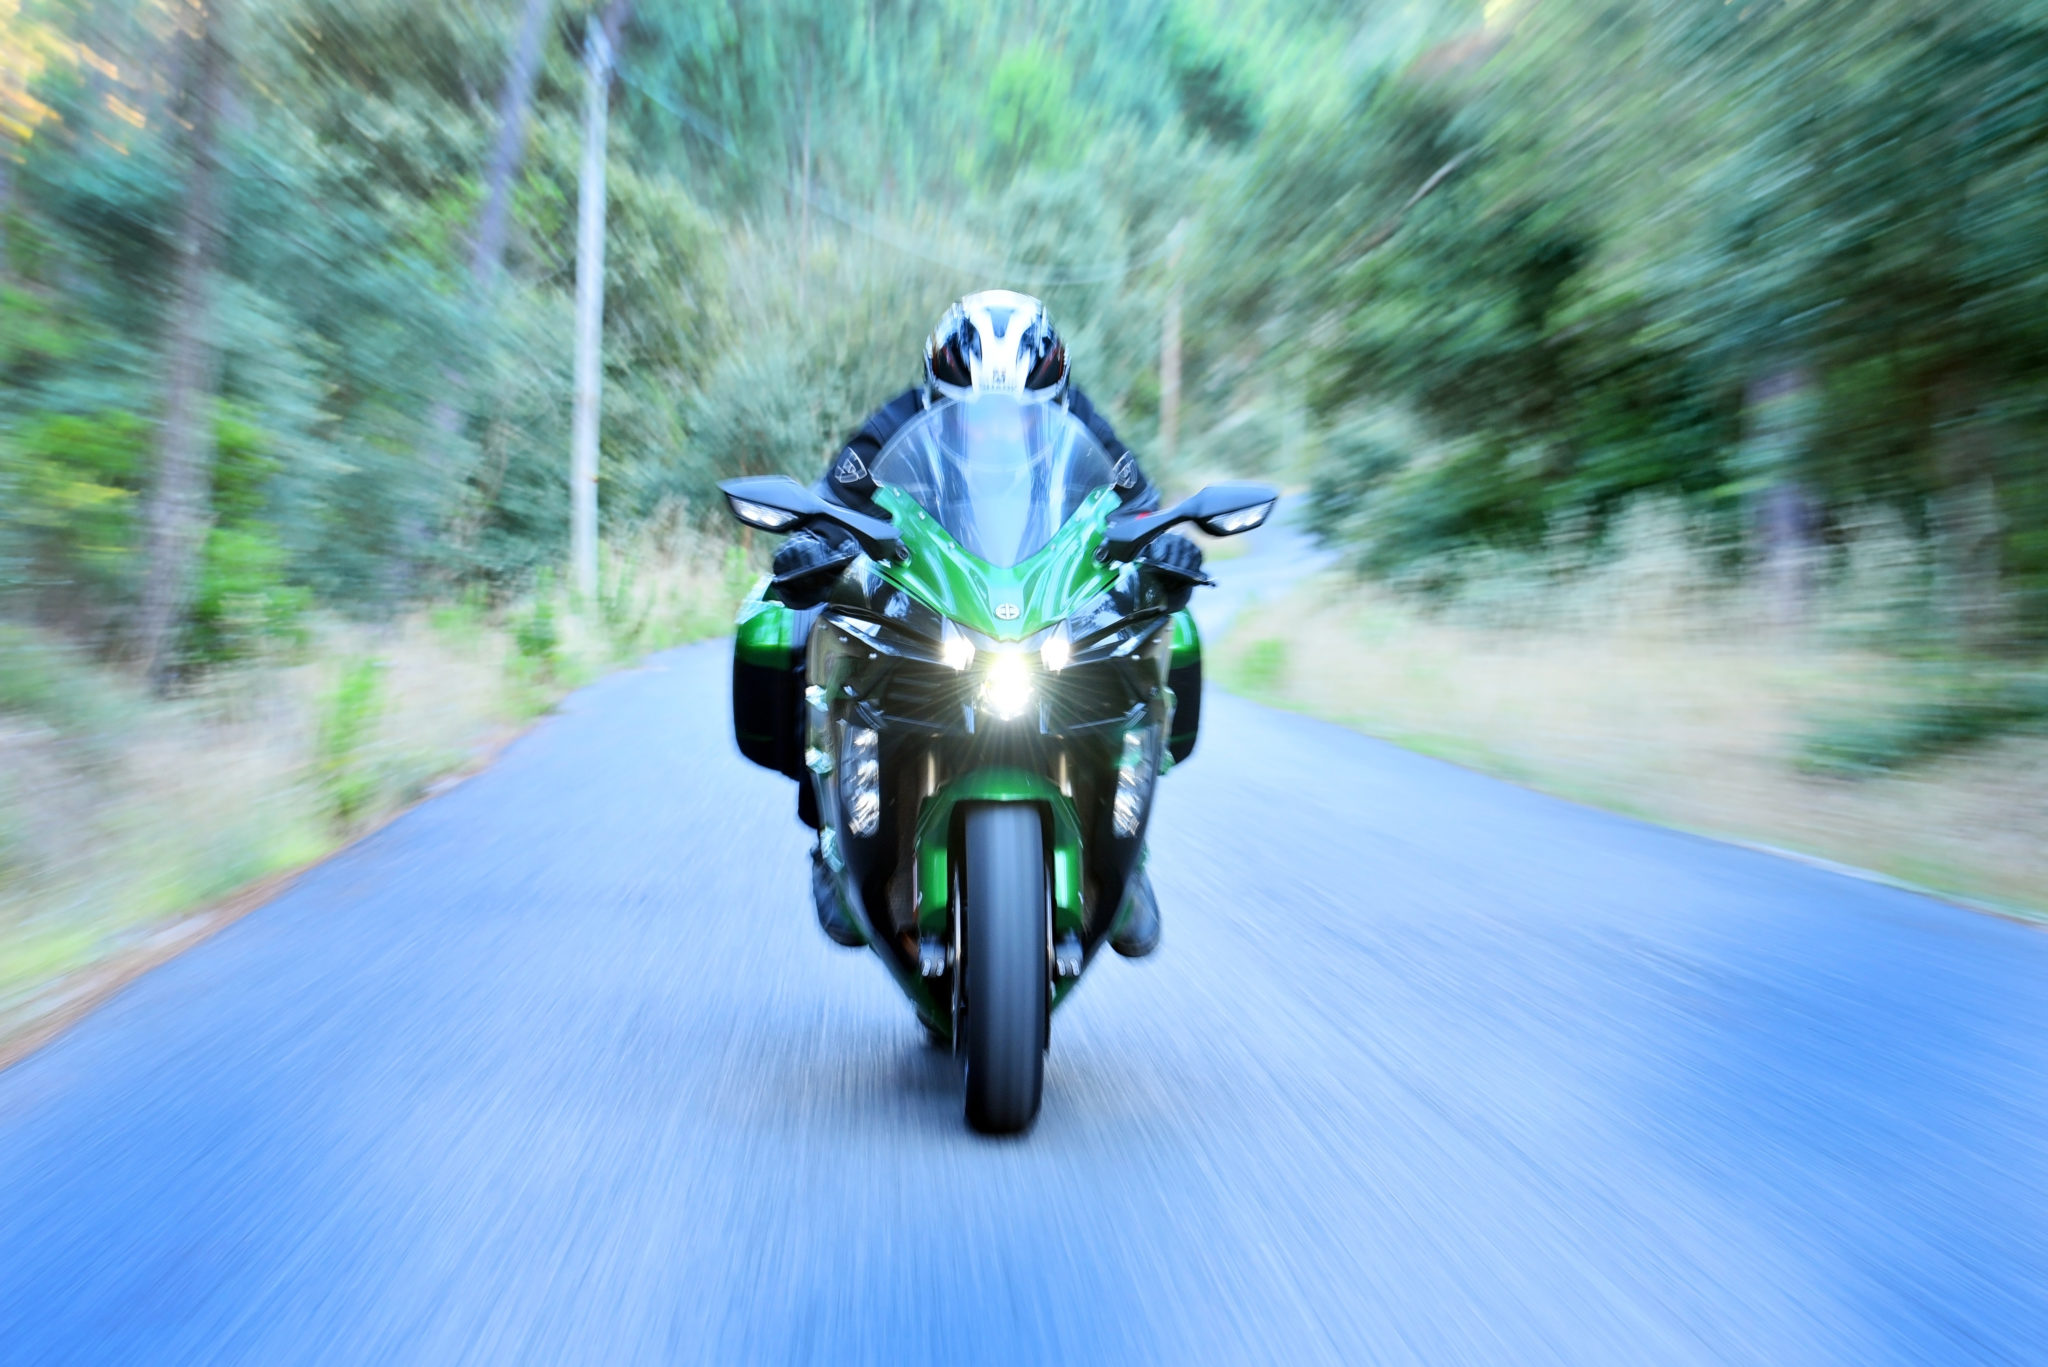 Kawasaki Ninja H2 SX SE review - Supercharged emotions